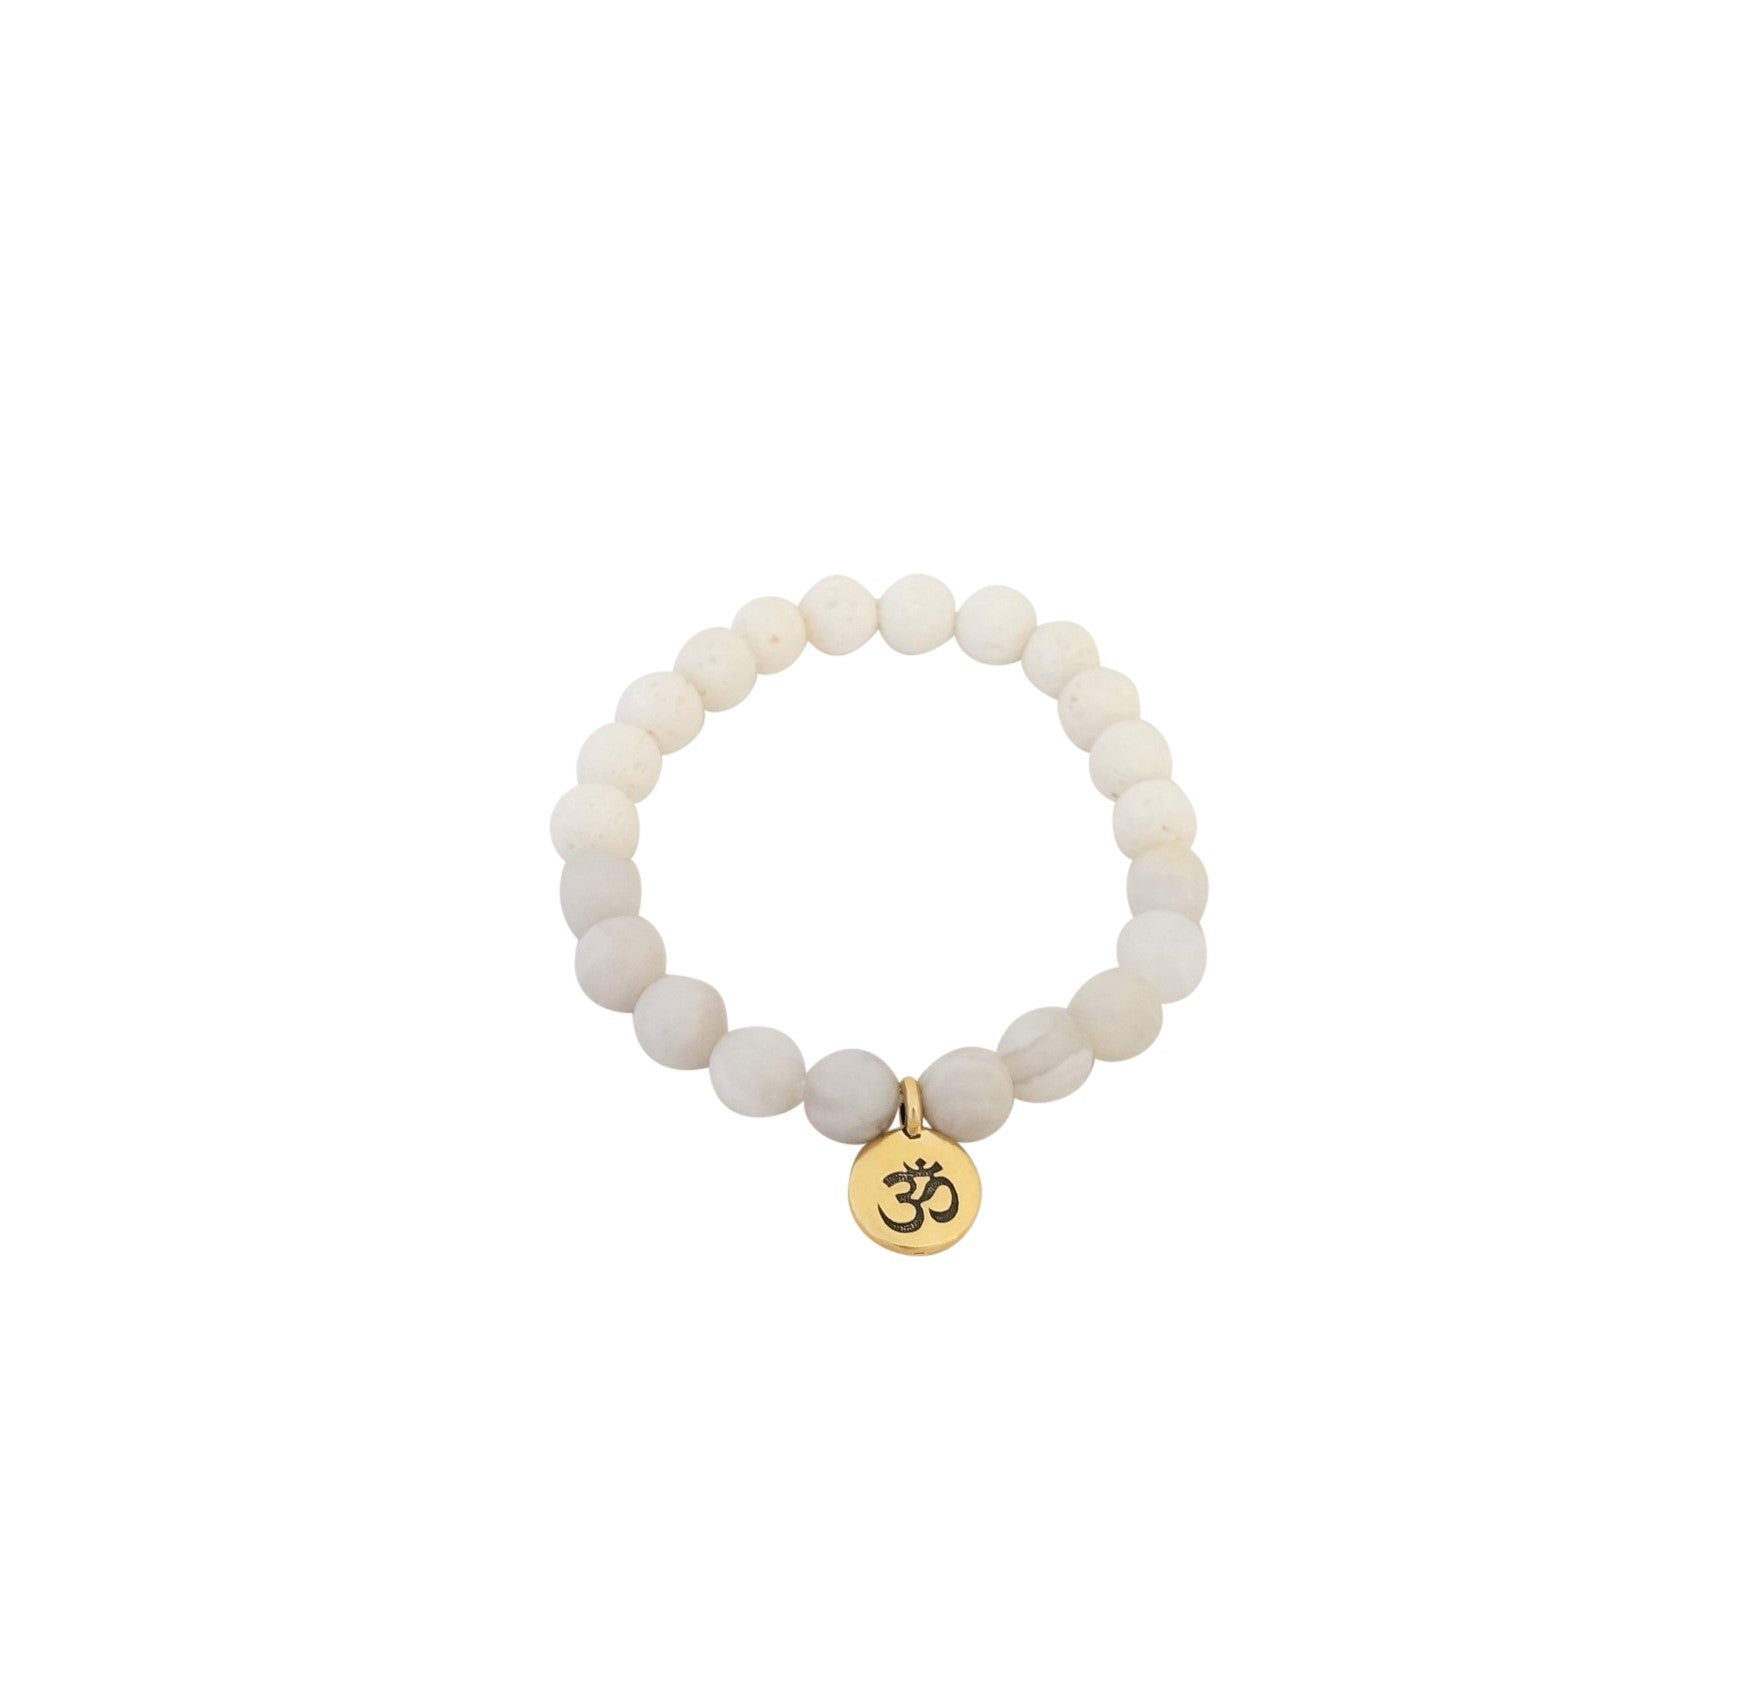 Essential Oil Om Bracelet - Carolyn Hearn Designs